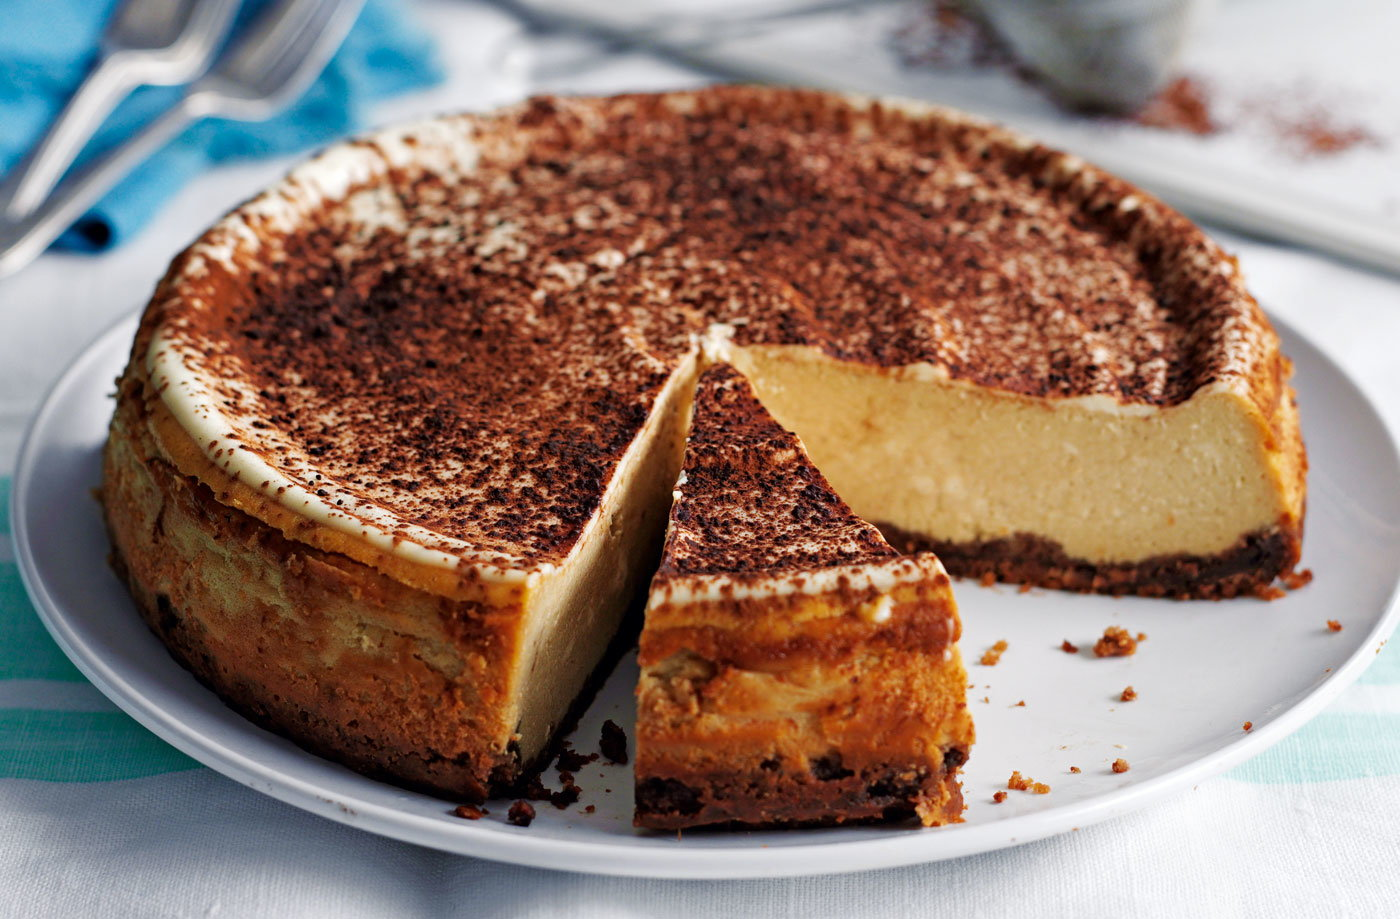 Chocolate Cake Recipe Uk Tesco: Cappuccino Cheesecake